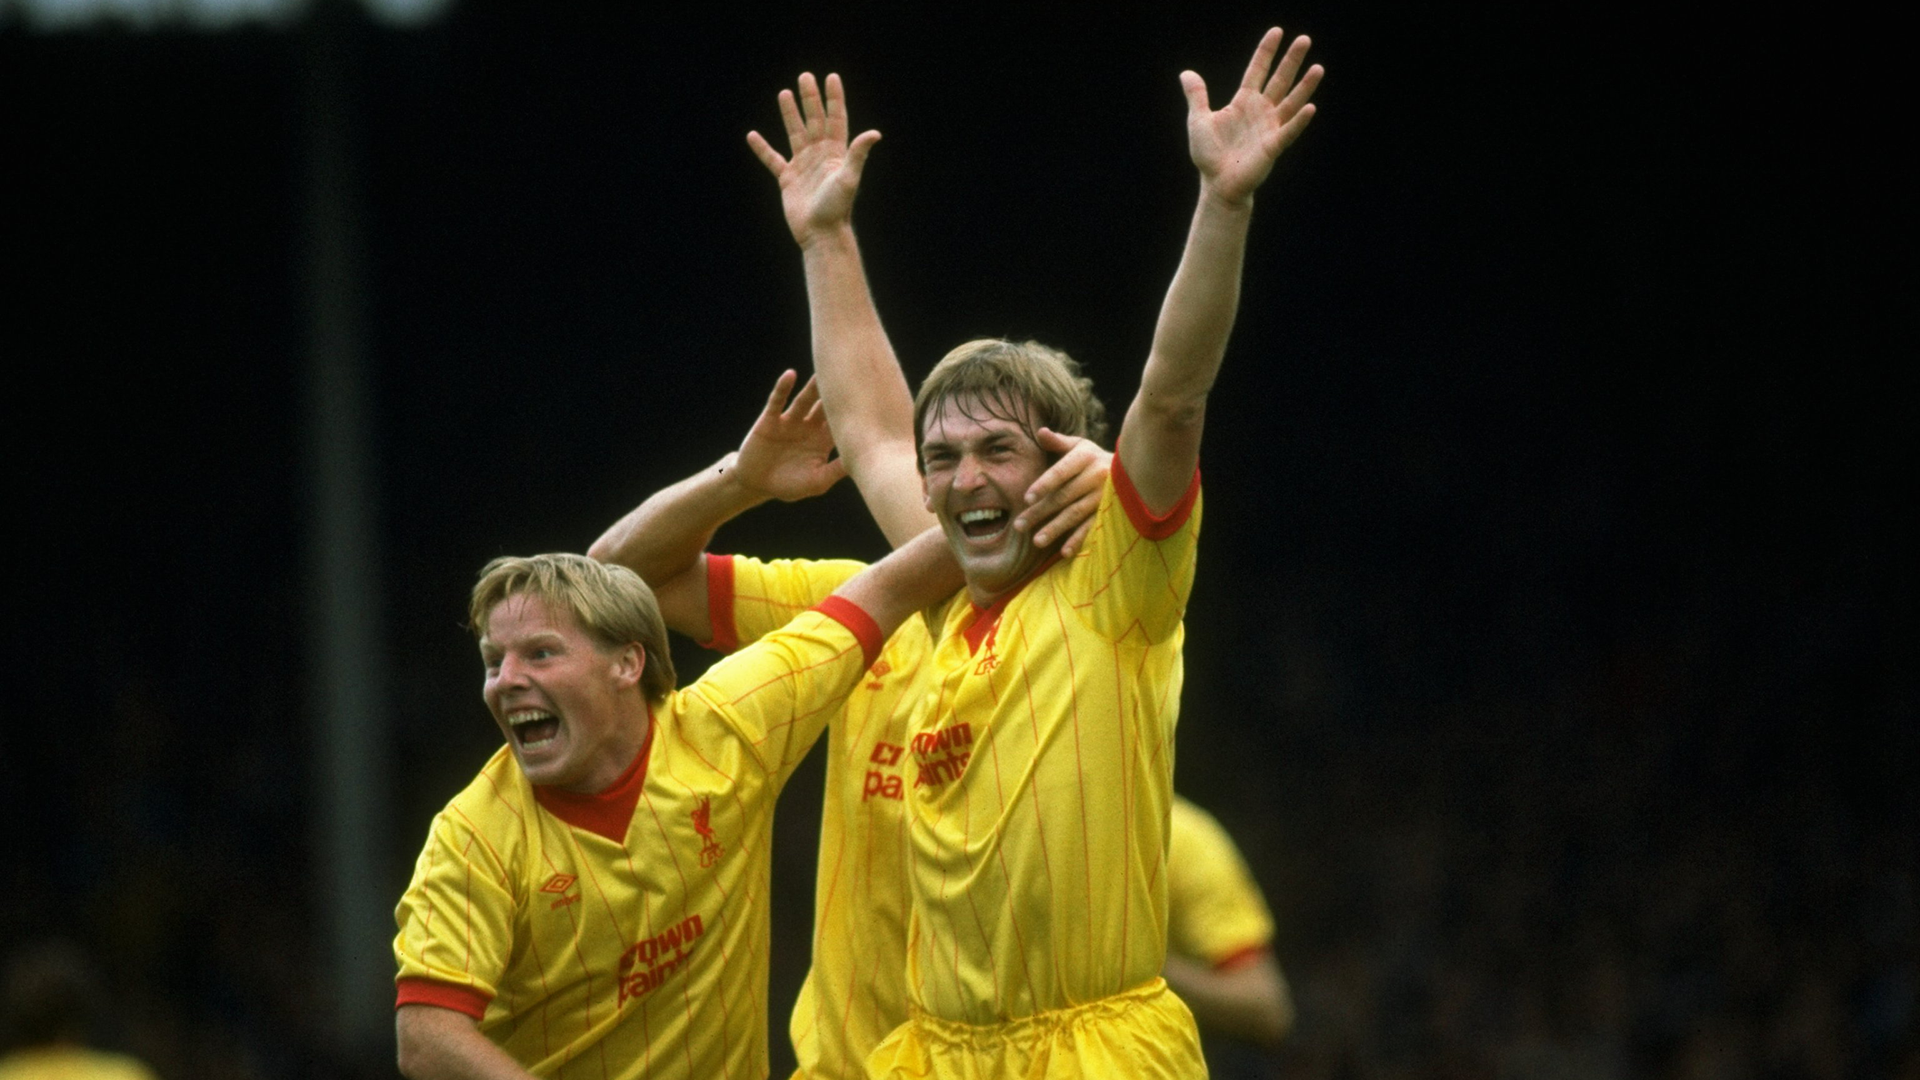 Kenny Dalglish Sammy Lee Liverpool FC